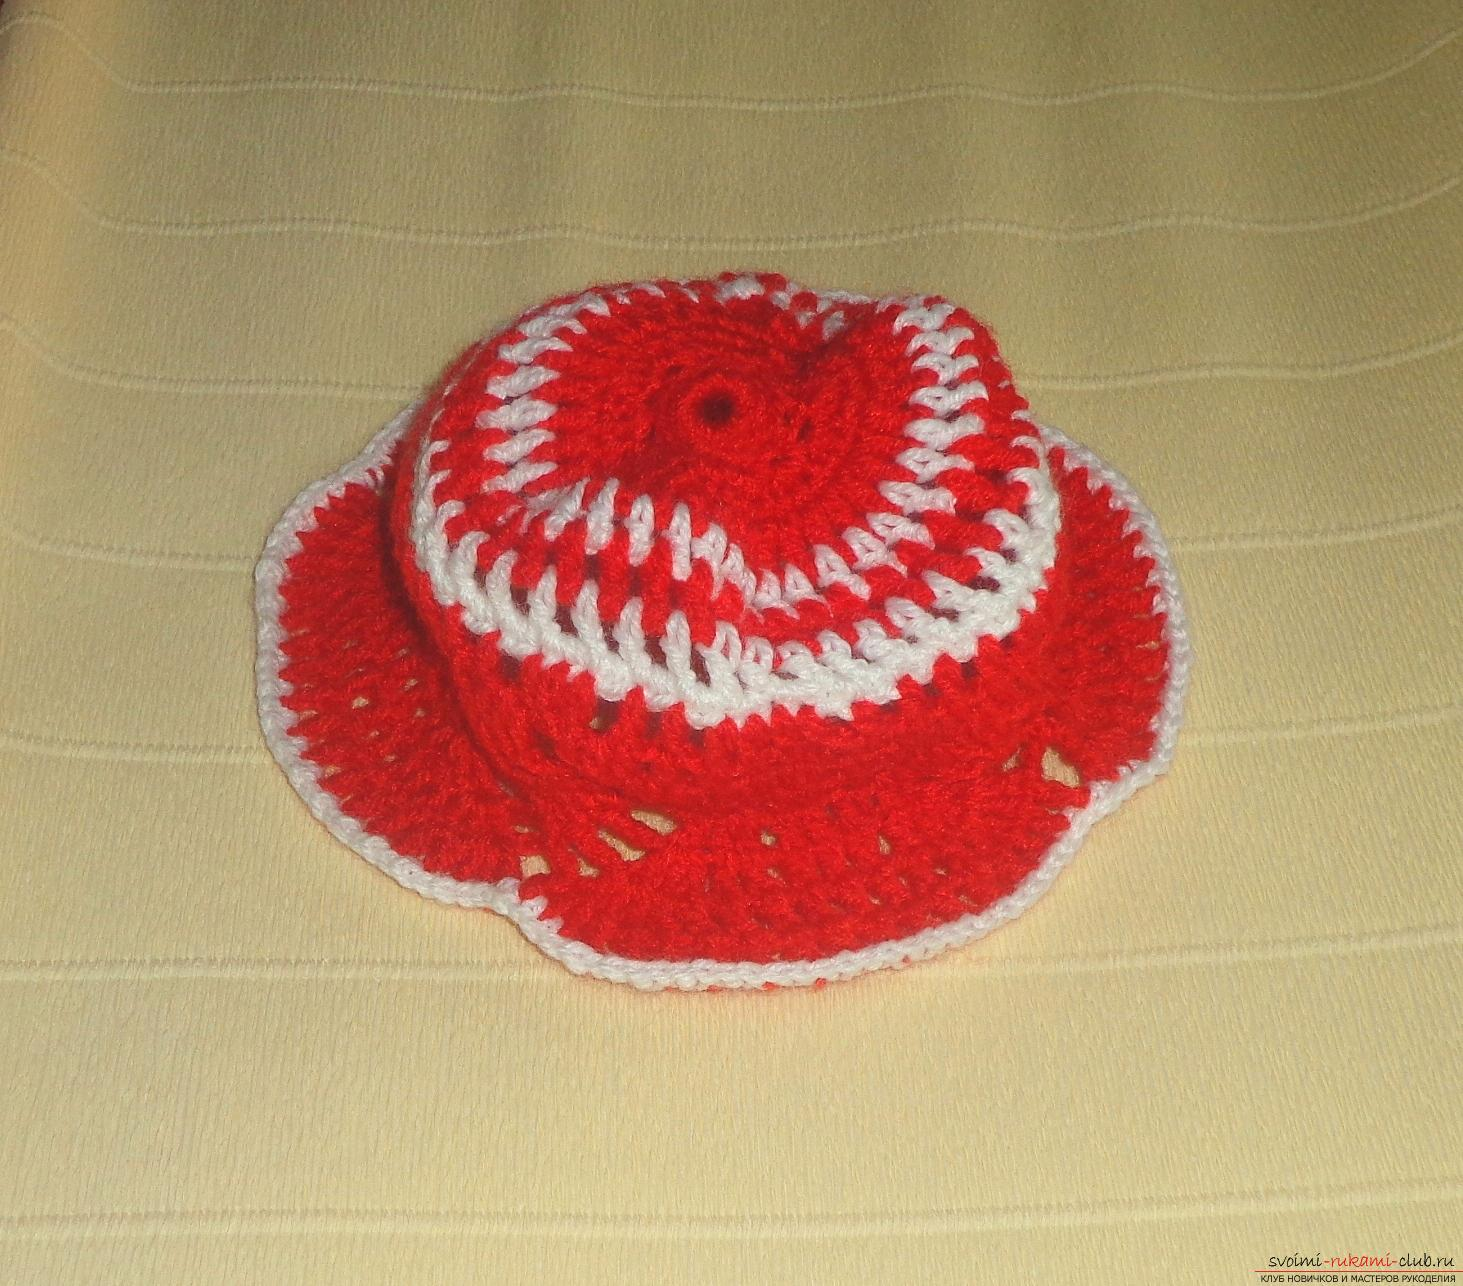 Master class on knitting a baby cap with a crochet with step-by-step instructions and photos. Photo №7